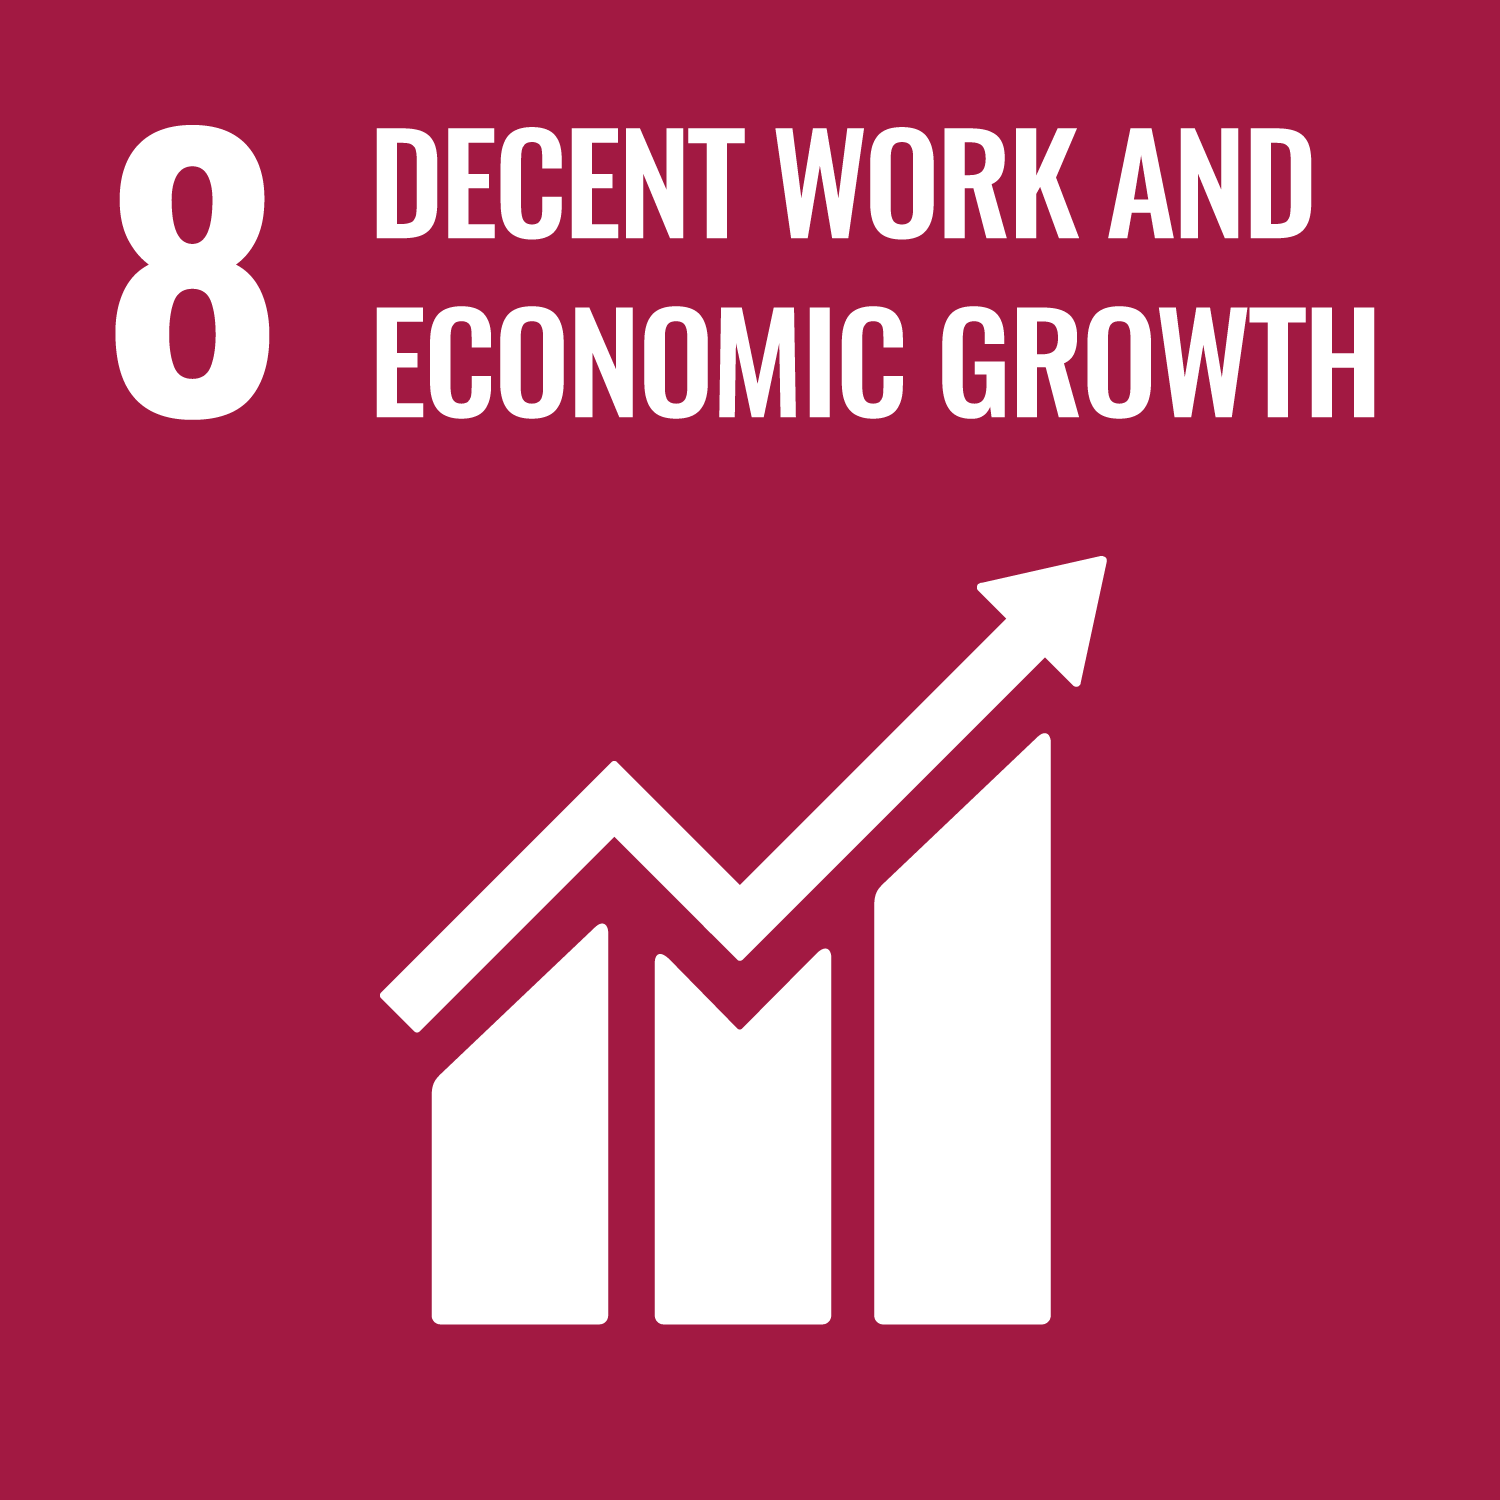 sustainable-development-goal-no-8-decent-work-and-economic-growth